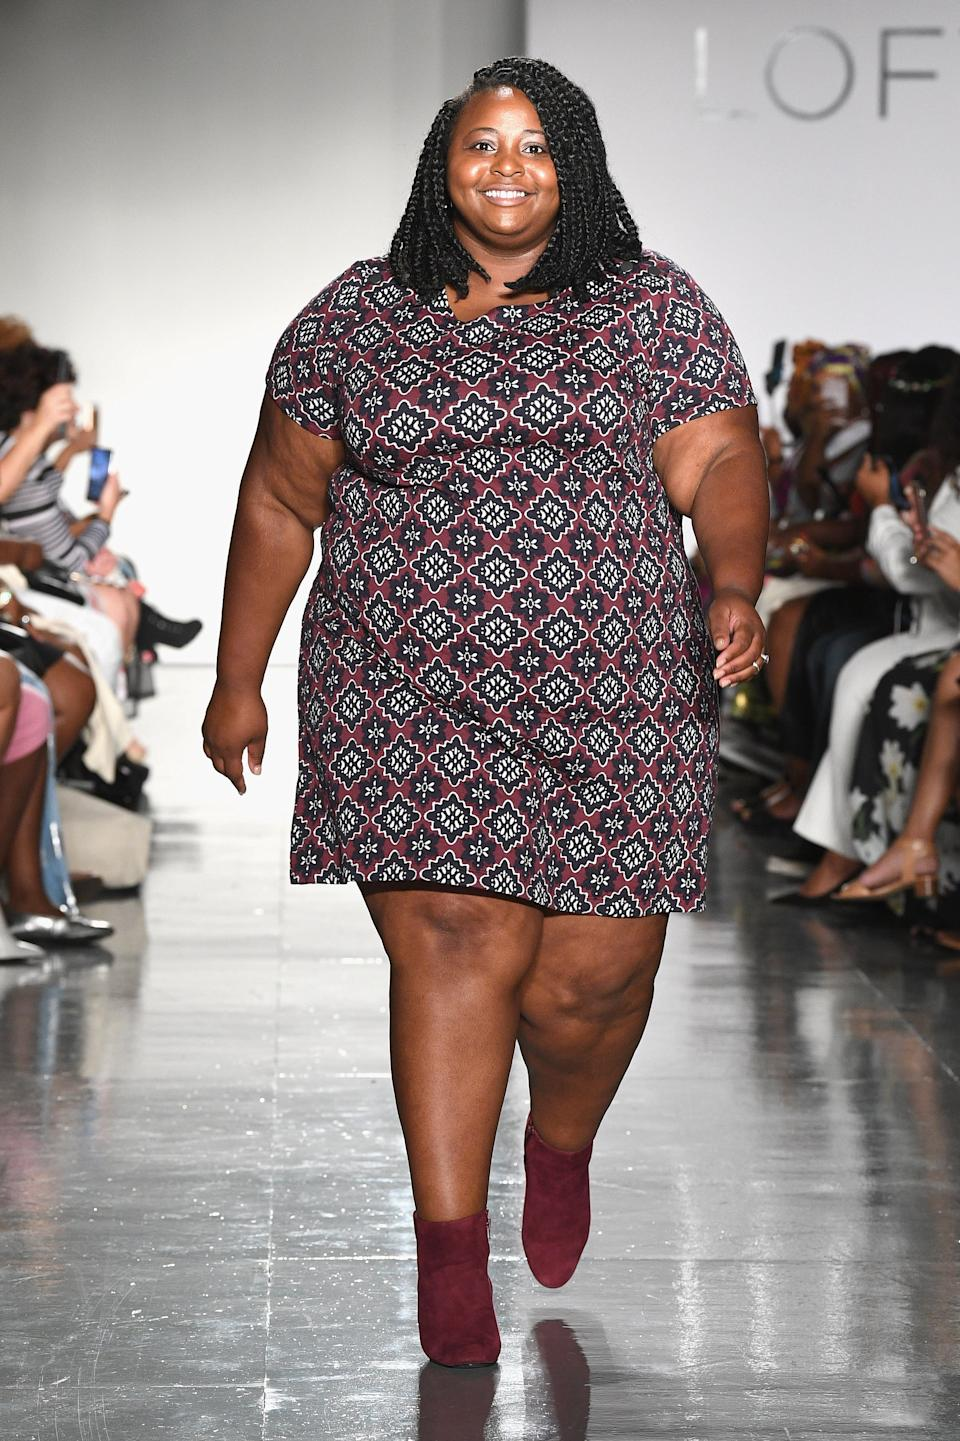 Ashley Wall walks the runway at the Loft Fashion Show during theCURVYcon Powered By Dia&Co (Getty Images).